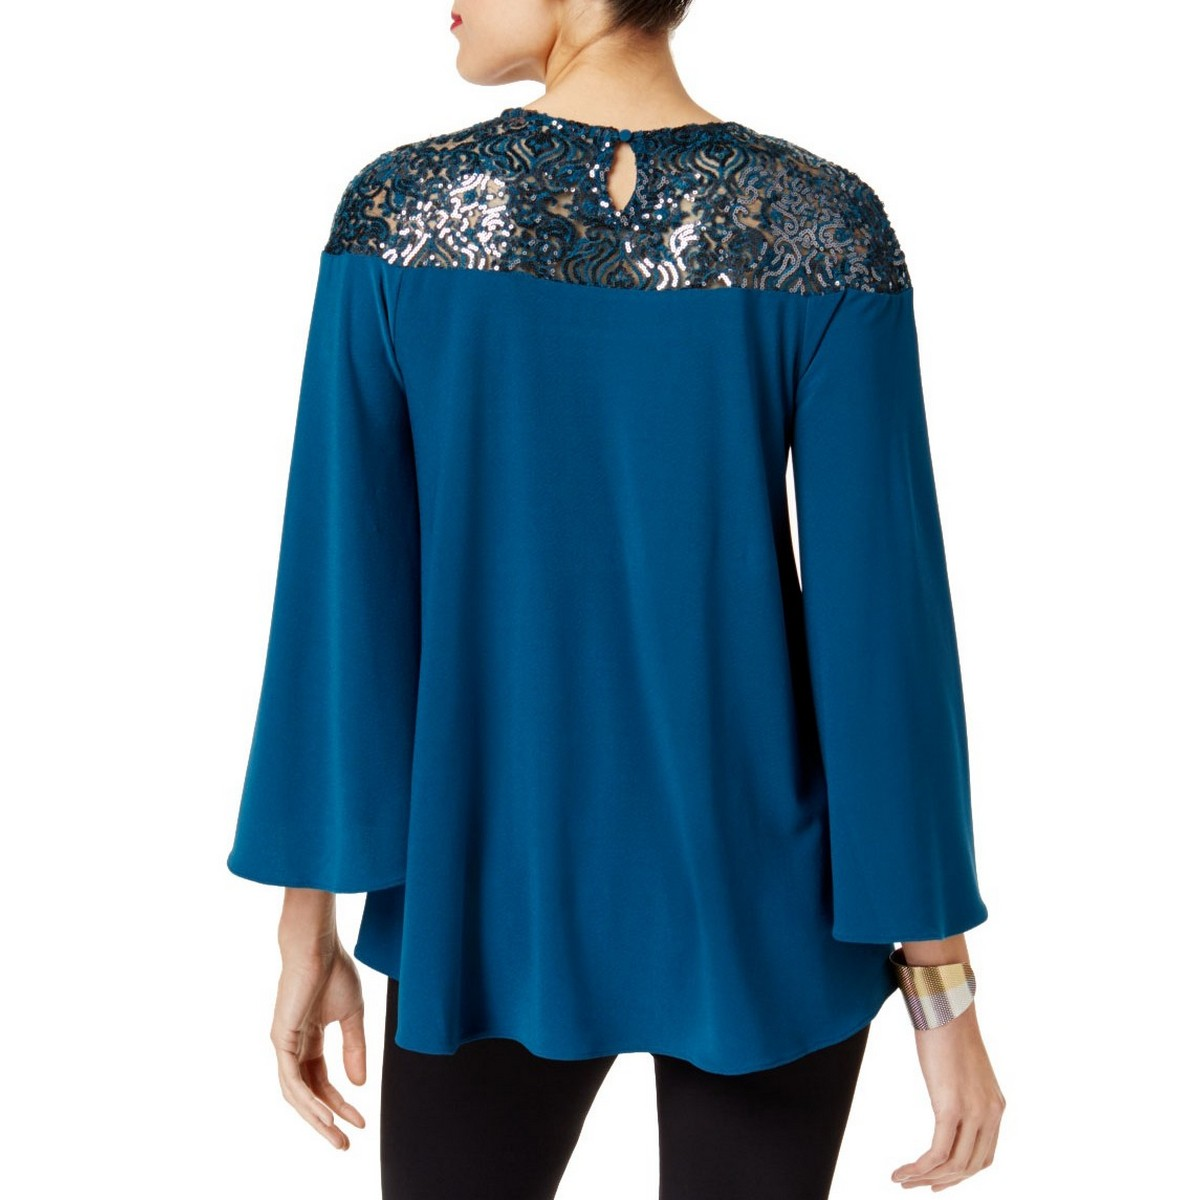 ALFANI-NEW-Women-039-s-Sequined-Bell-Sleeve-Swing-Blouse-Shirt-Top-TEDO thumbnail 4